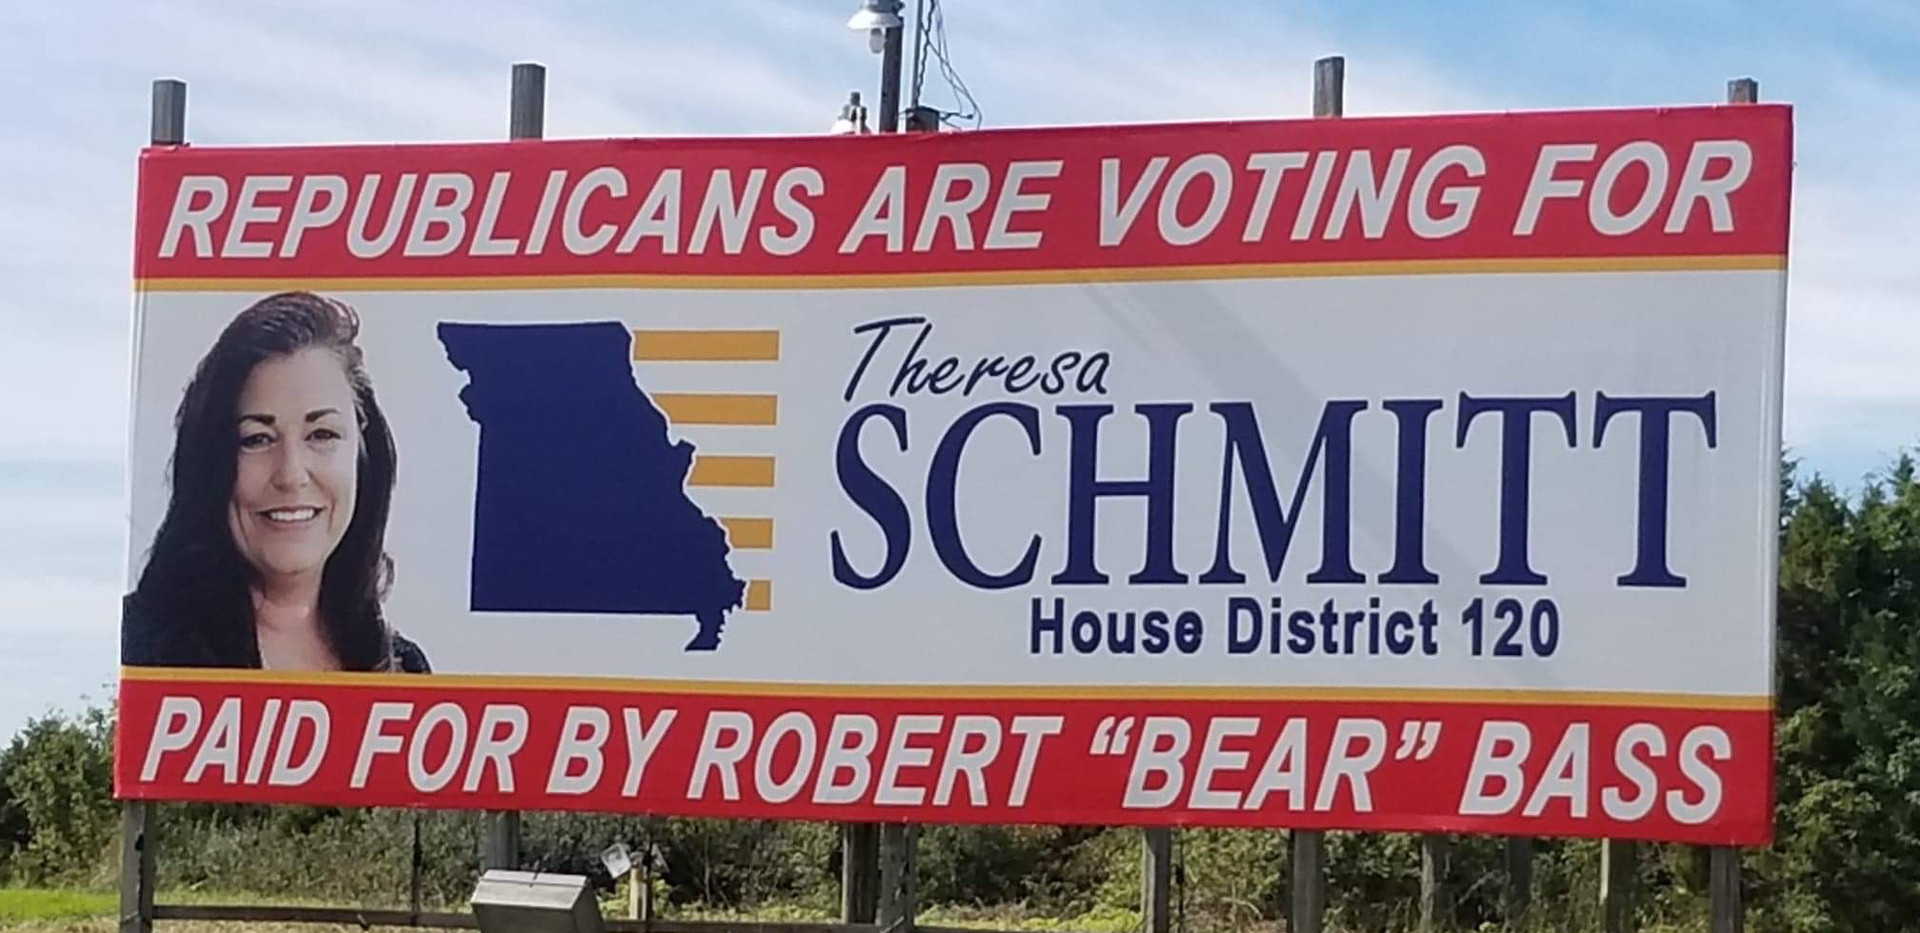 political banner billboard